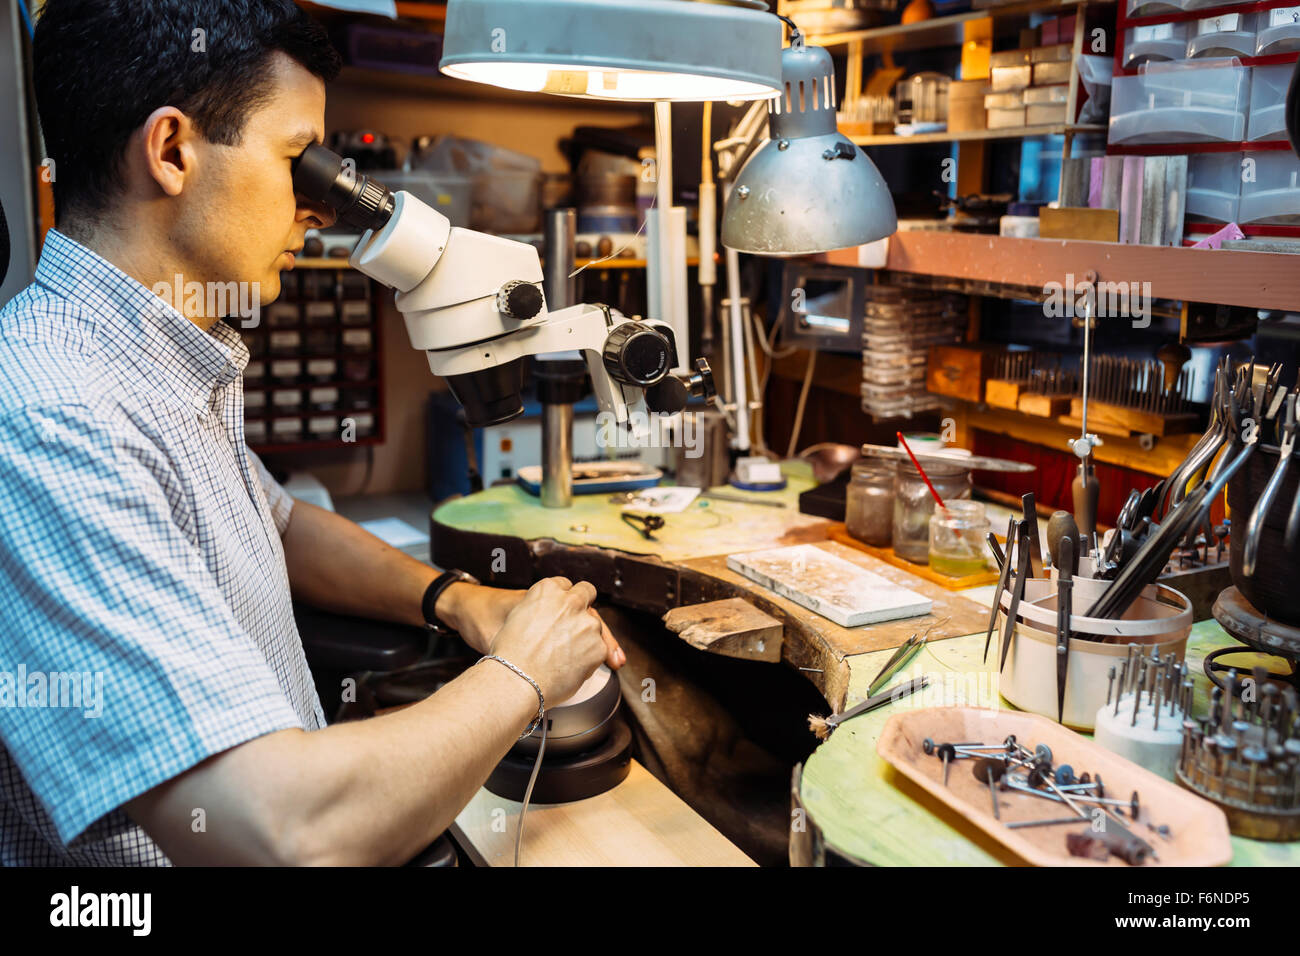 Precision work carried out by jeweler in workshop - Stock Image